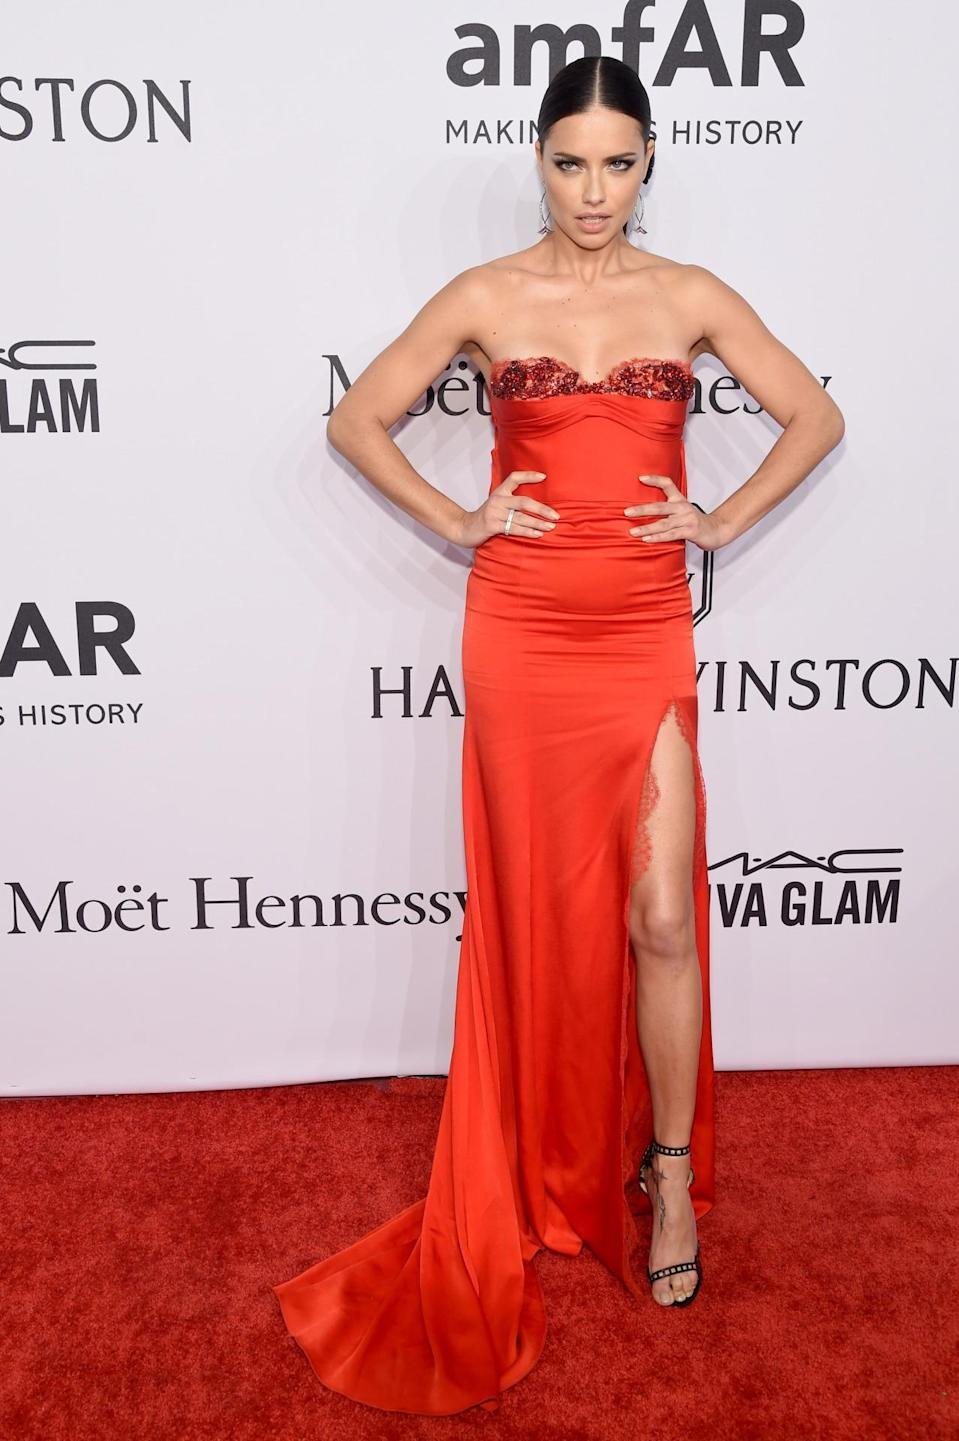 <p>The Brazilian model oozed Hollywood glamour in this racy red Marchesa gown. <i>[Photo: Getty]</i><br></p>